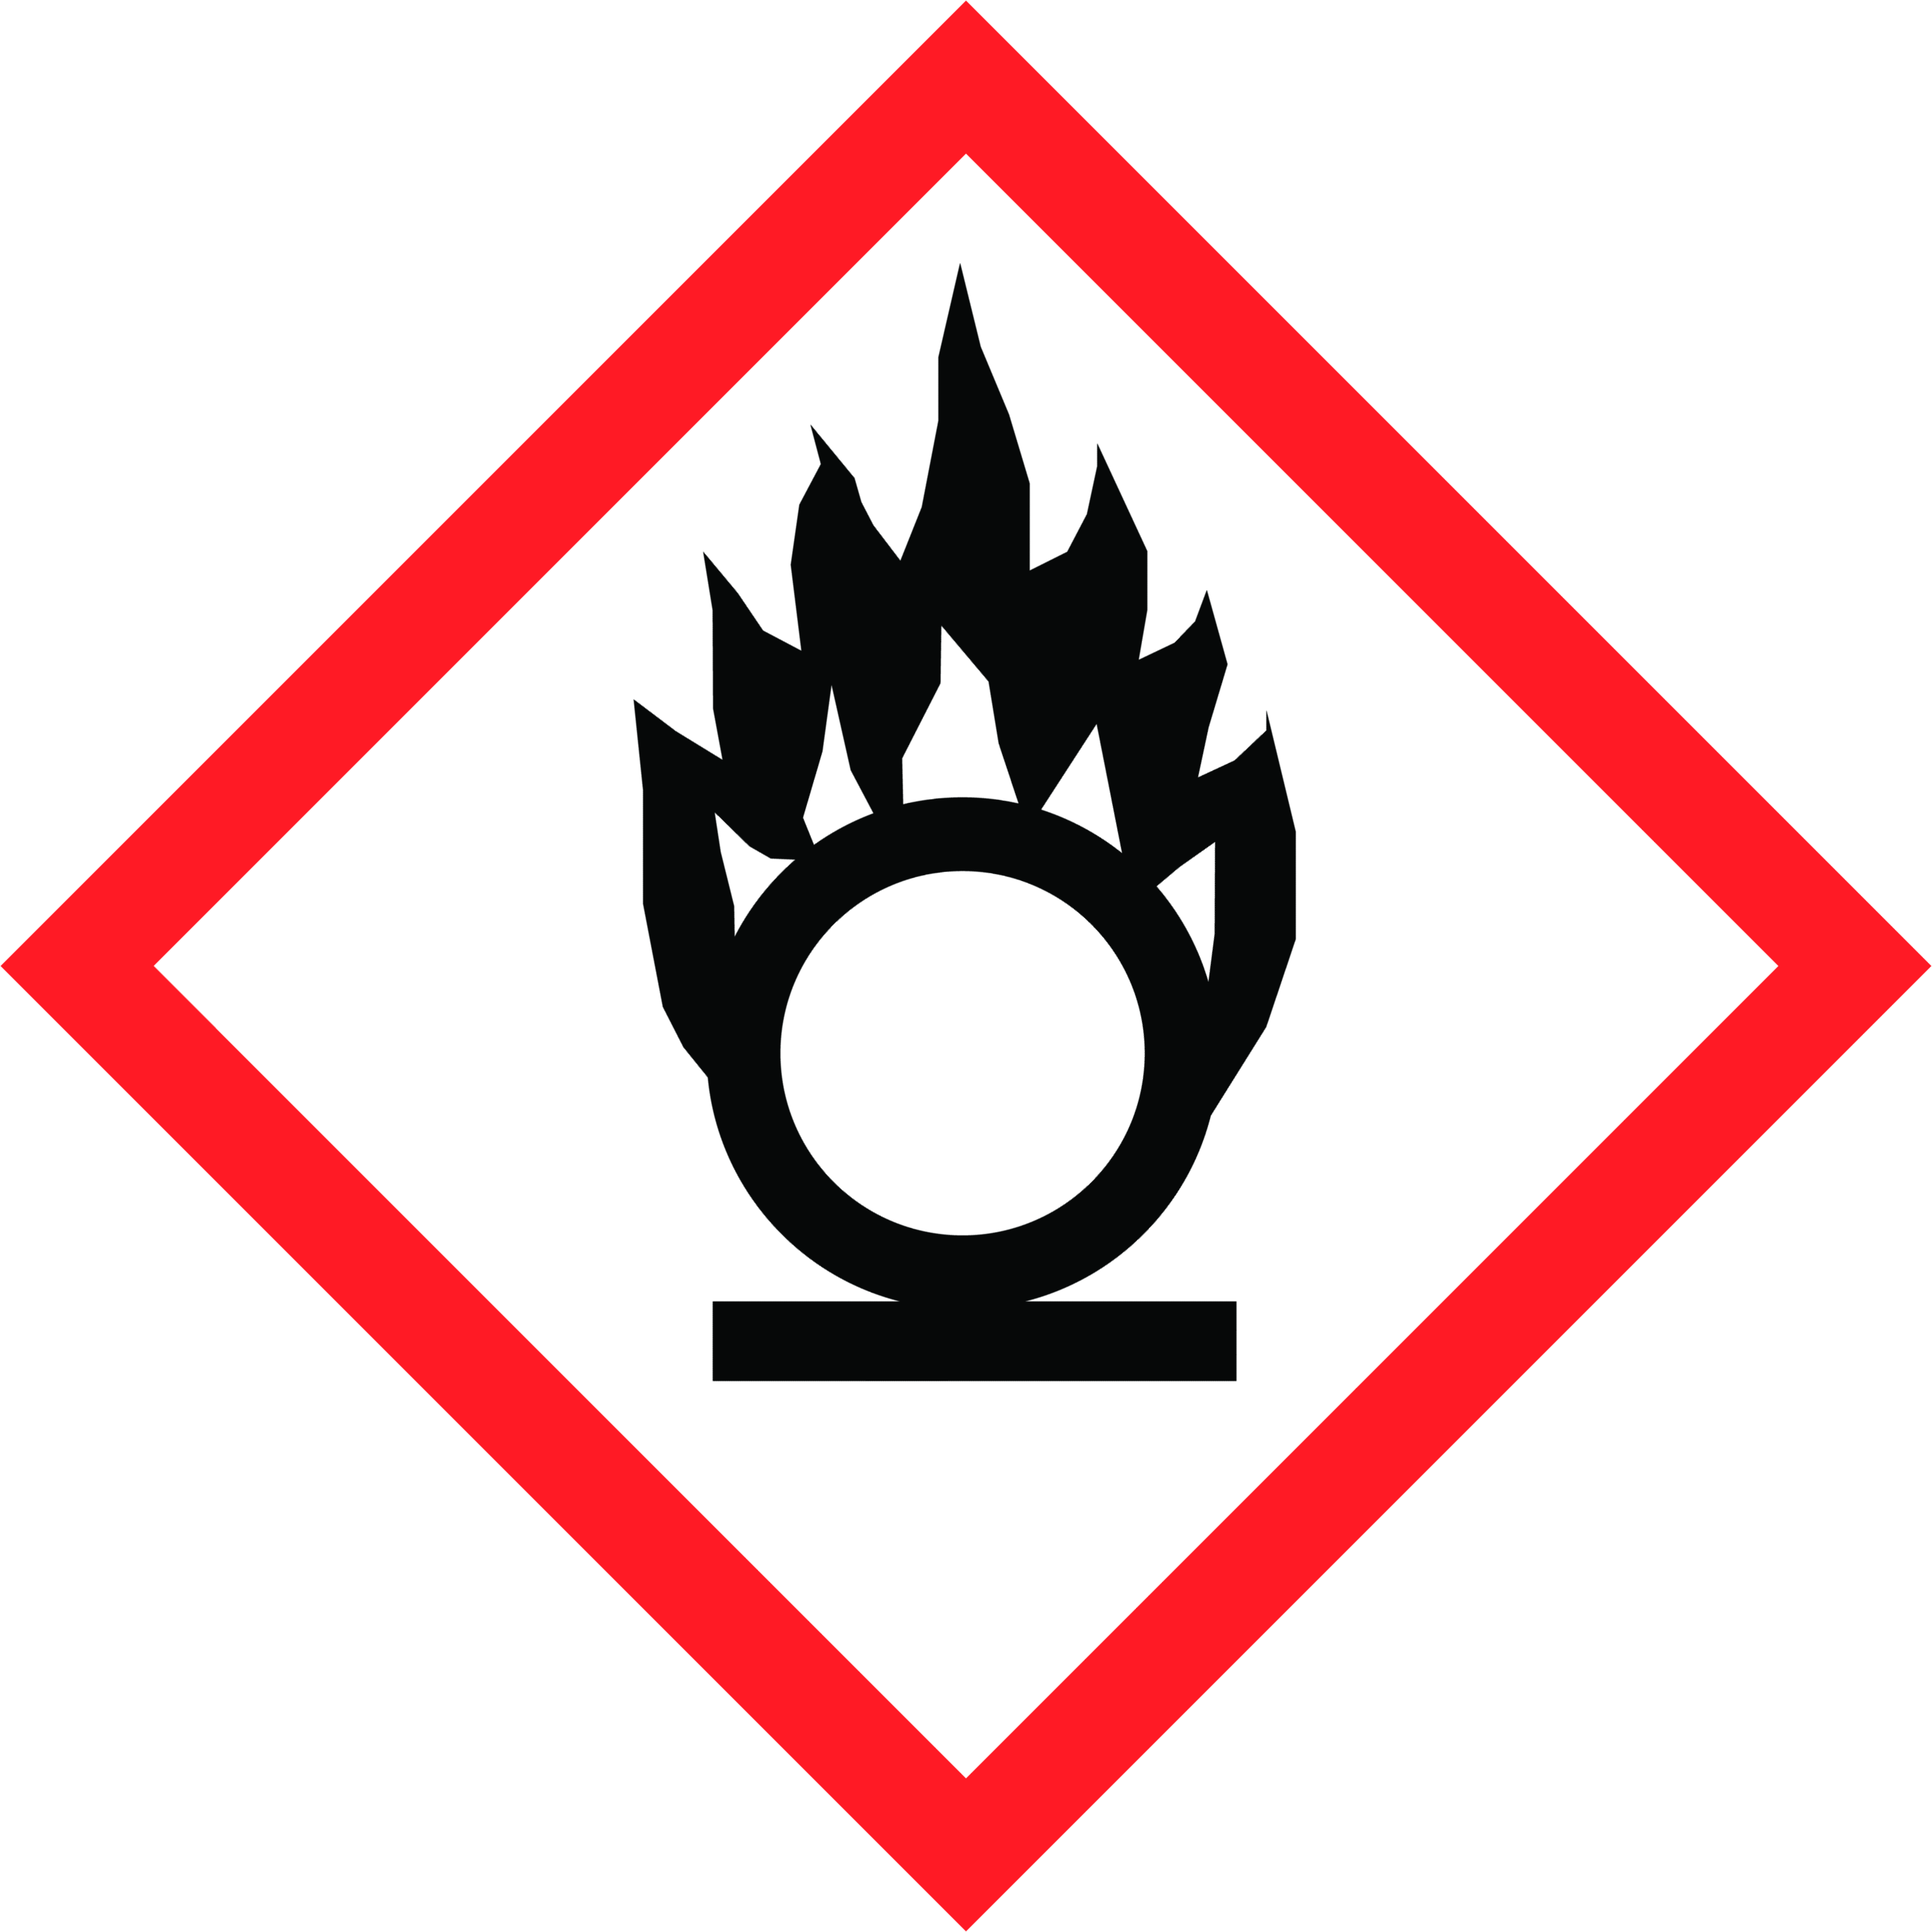 Ghs hazard pictograms for download biocorpaavc Gallery